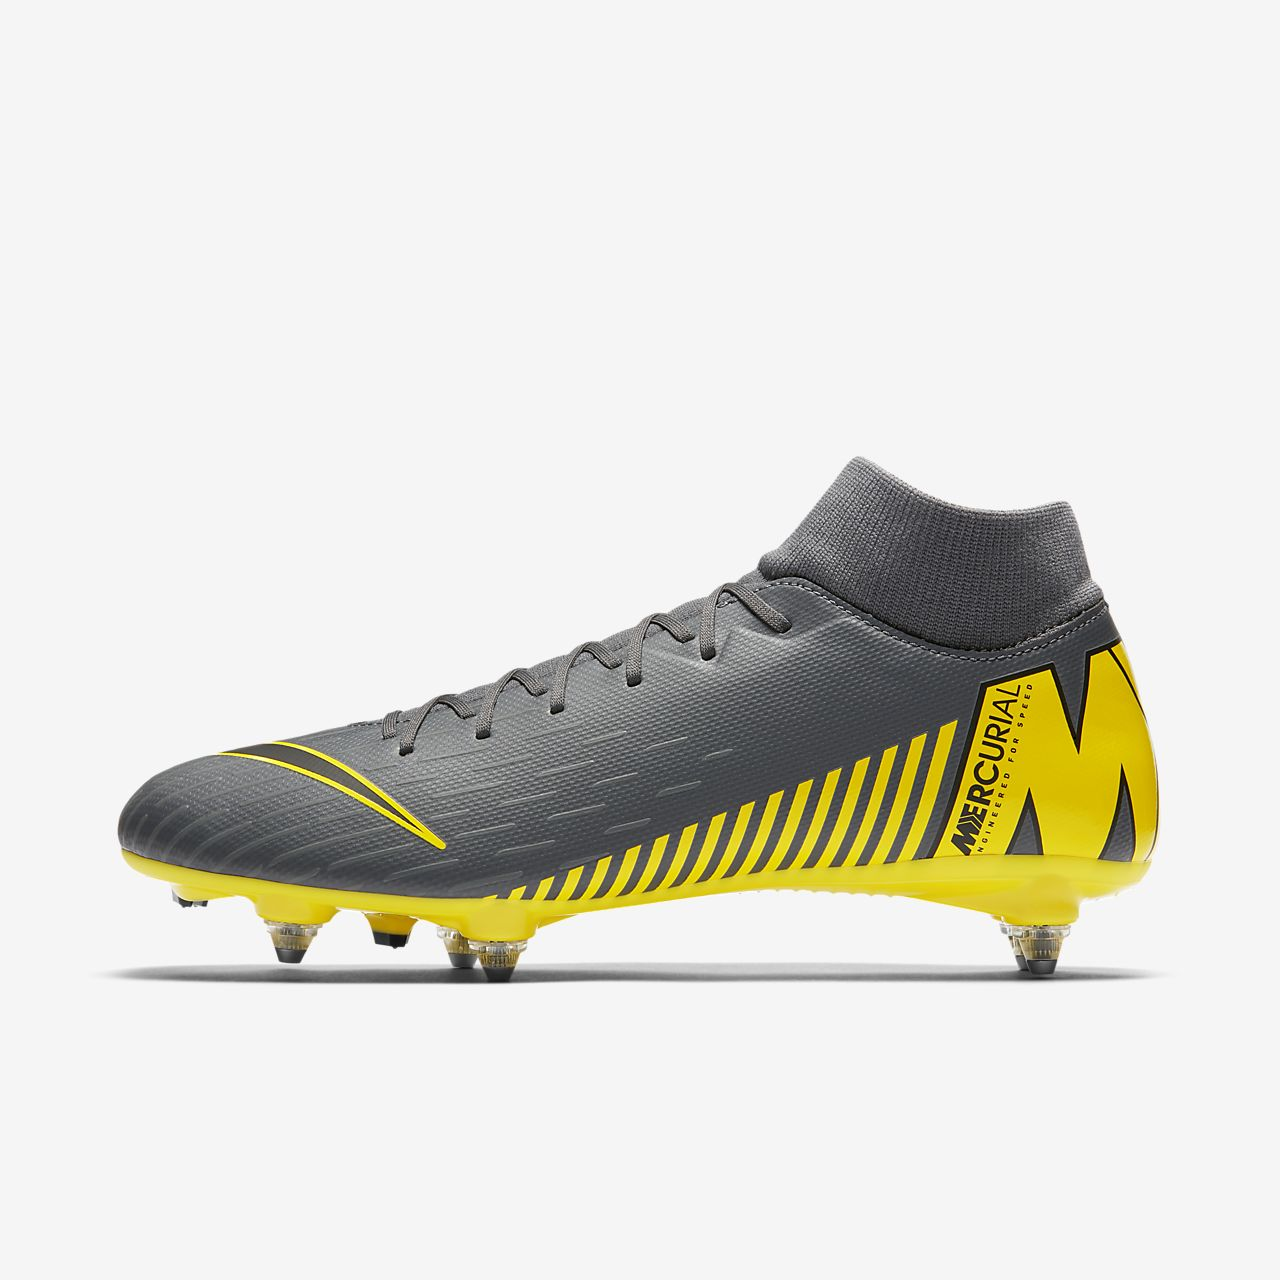 check out dbb53 937f3 ... Nike Mercurial Superfly VI Academy SG-PRO Soft-Ground Football Boot